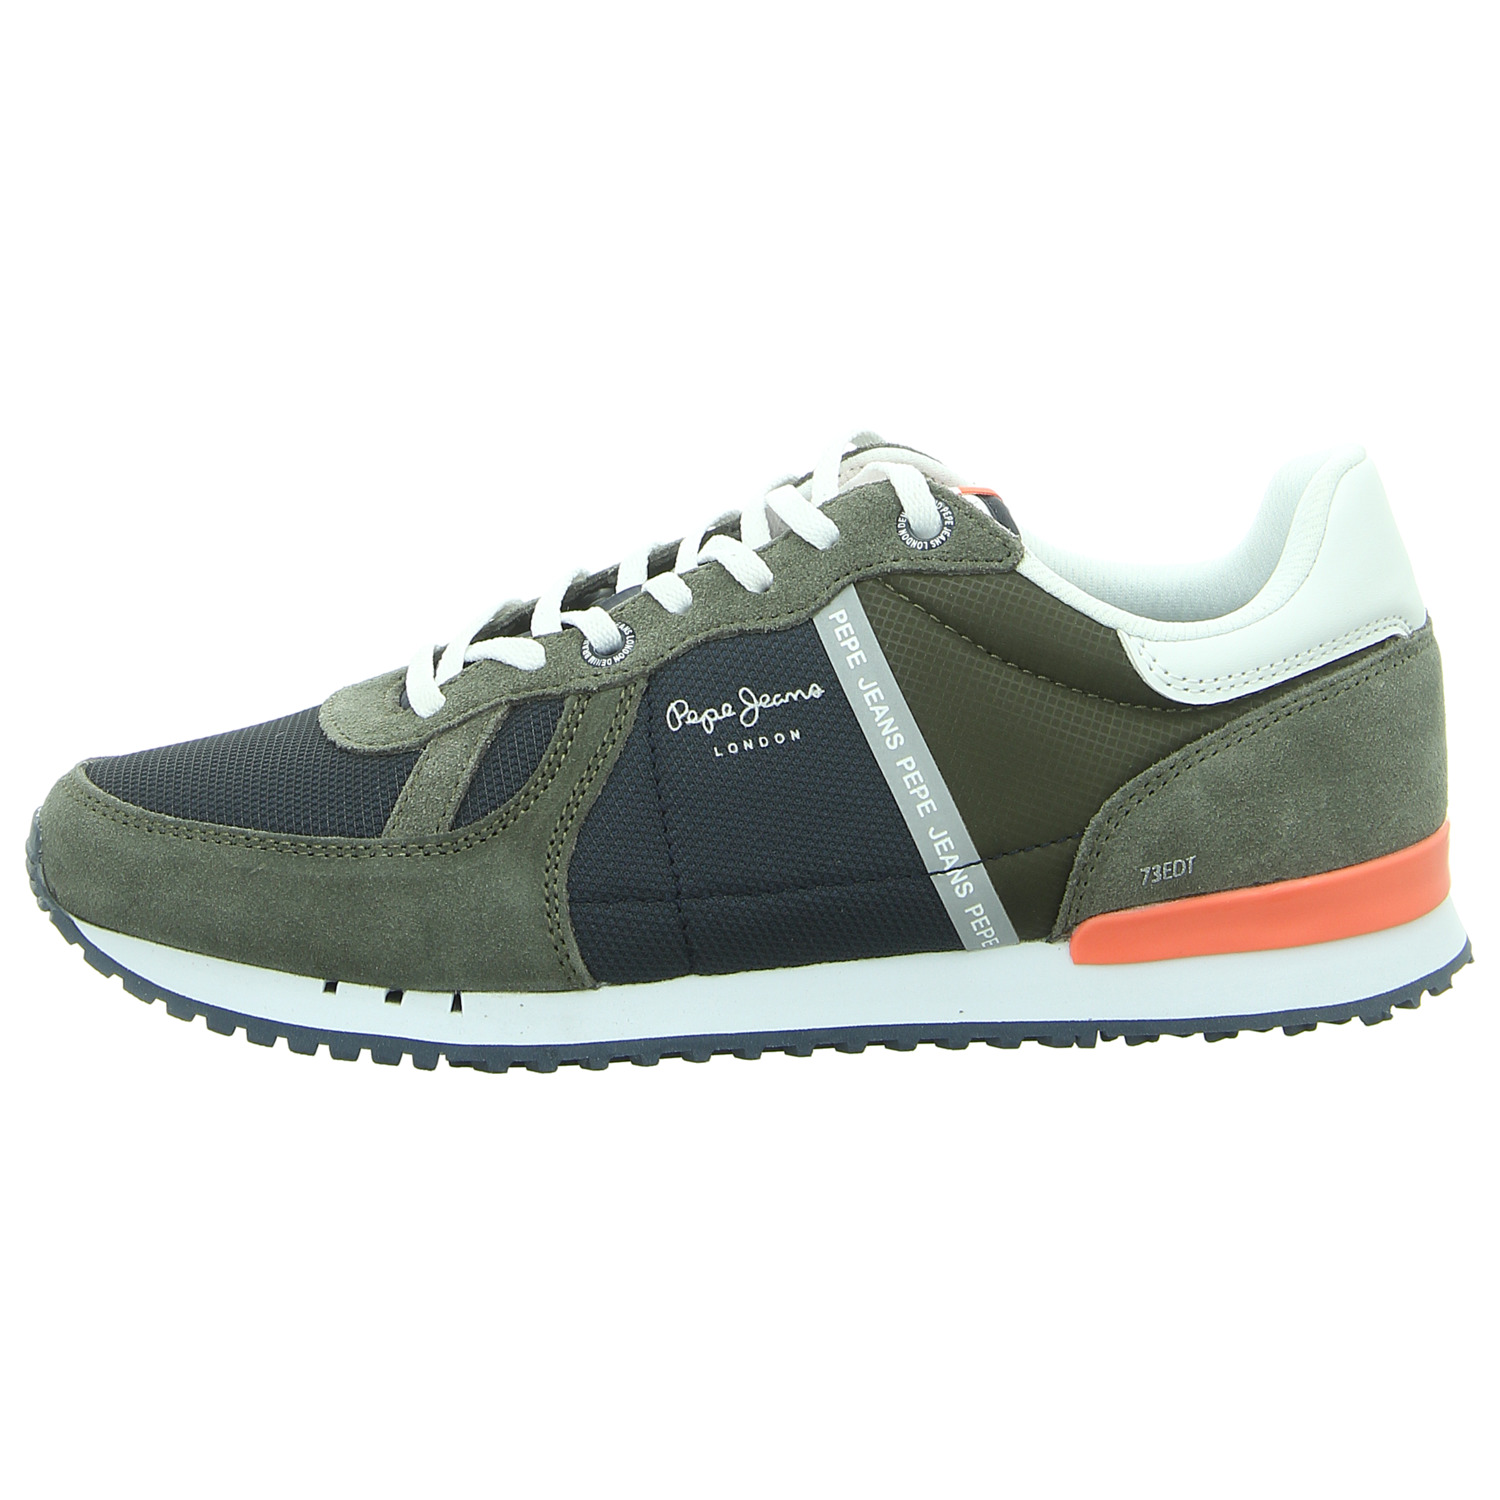 Pepe Jeans Herren Sneaker Industry Has No Limits in schwarz